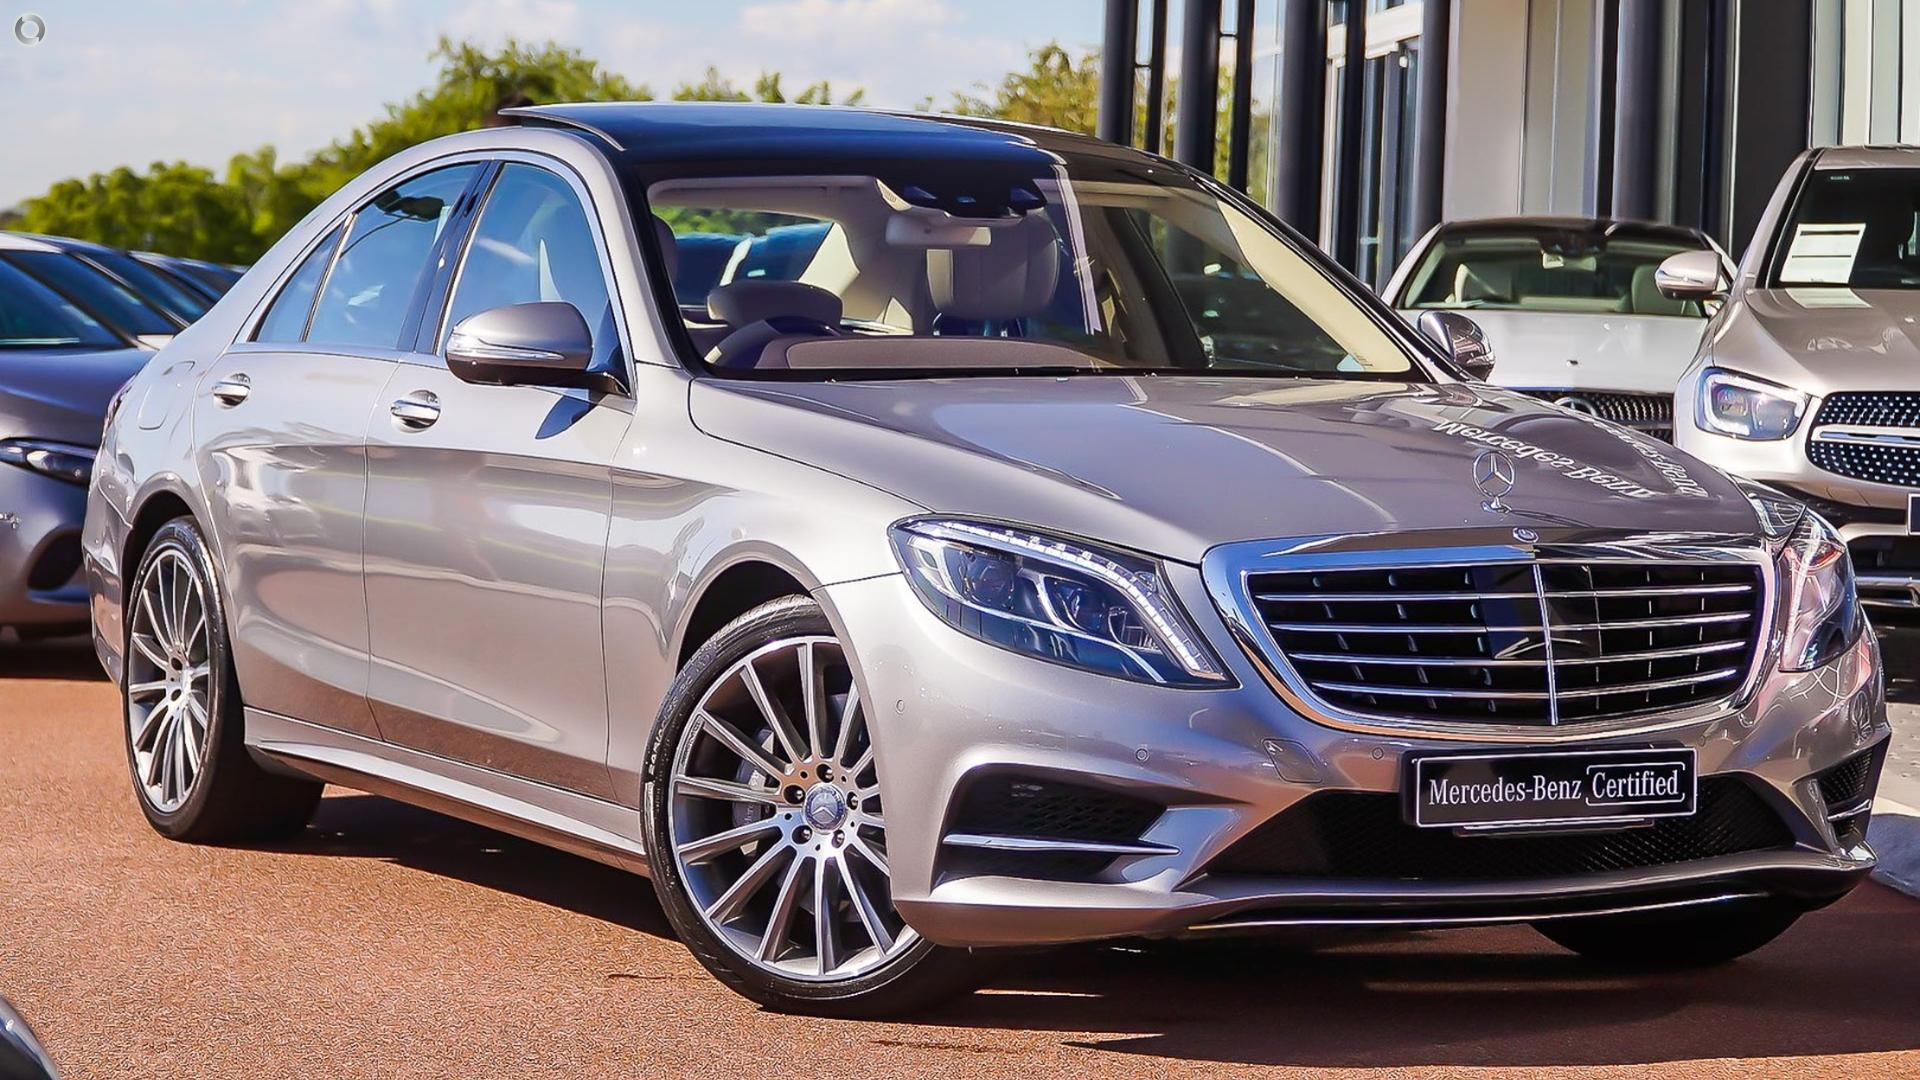 2014 Mercedes-Benz S 350 BLUETEC Sedan